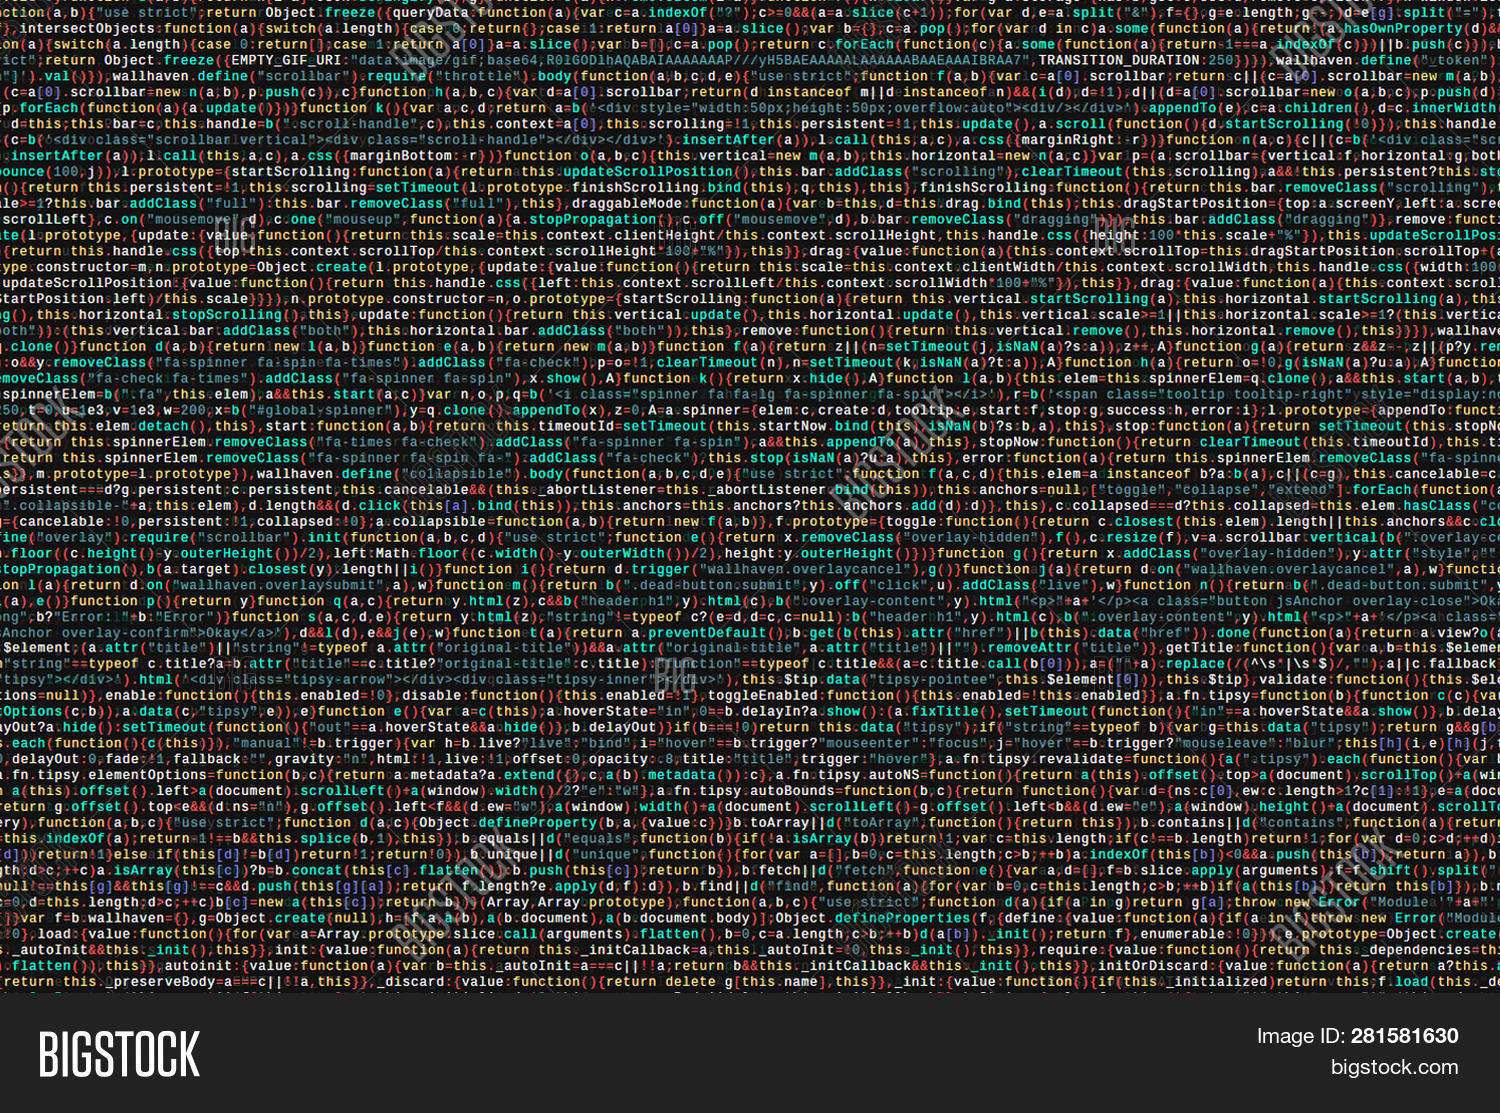 Javascript Code Text Image & Photo (Free Trial) | Bigstock